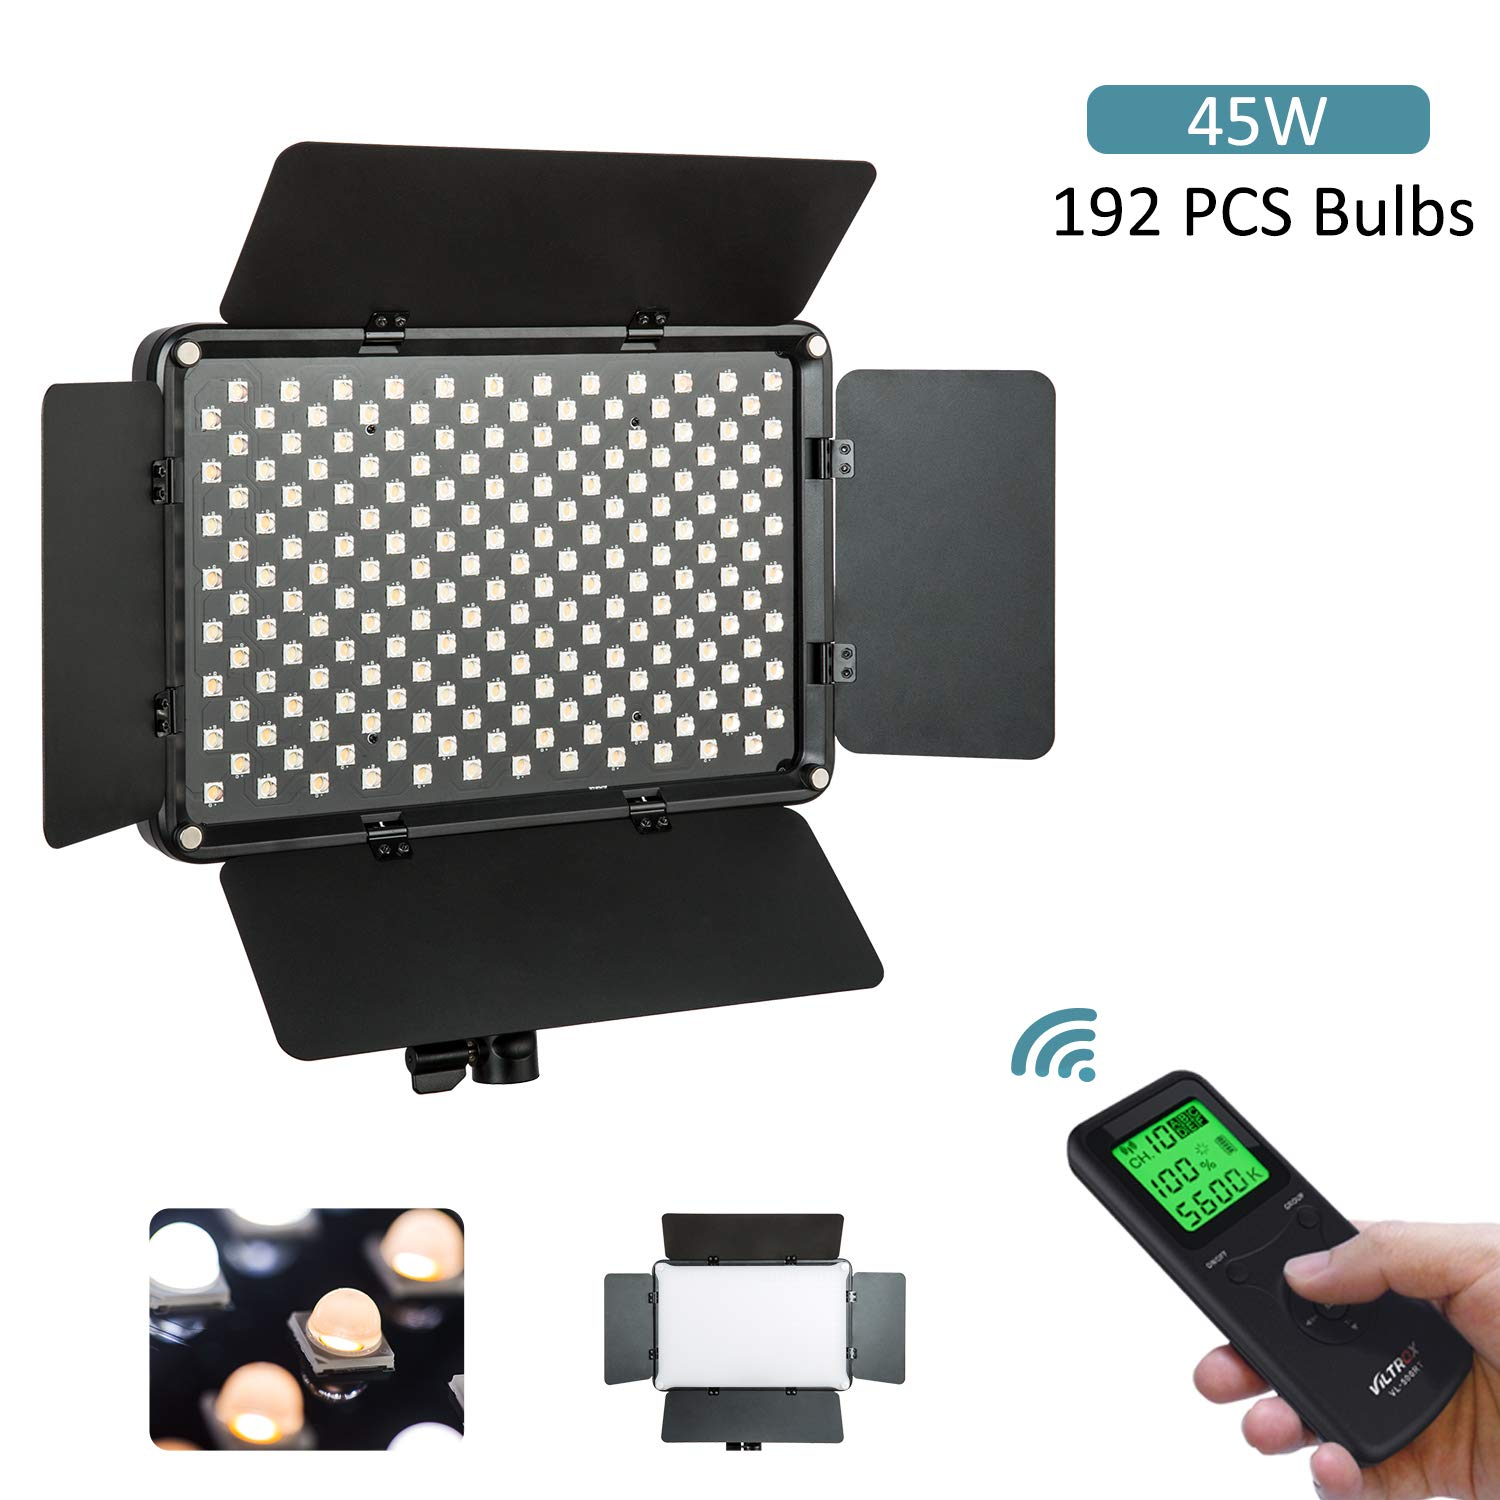 VILTROX VL-S192T 4700LM Led Video Lights Panel Bi-Color 3300k-5600k Photography Video Lighting CRI95+ TLCI95+ Studio YouTube Outdoor 45W